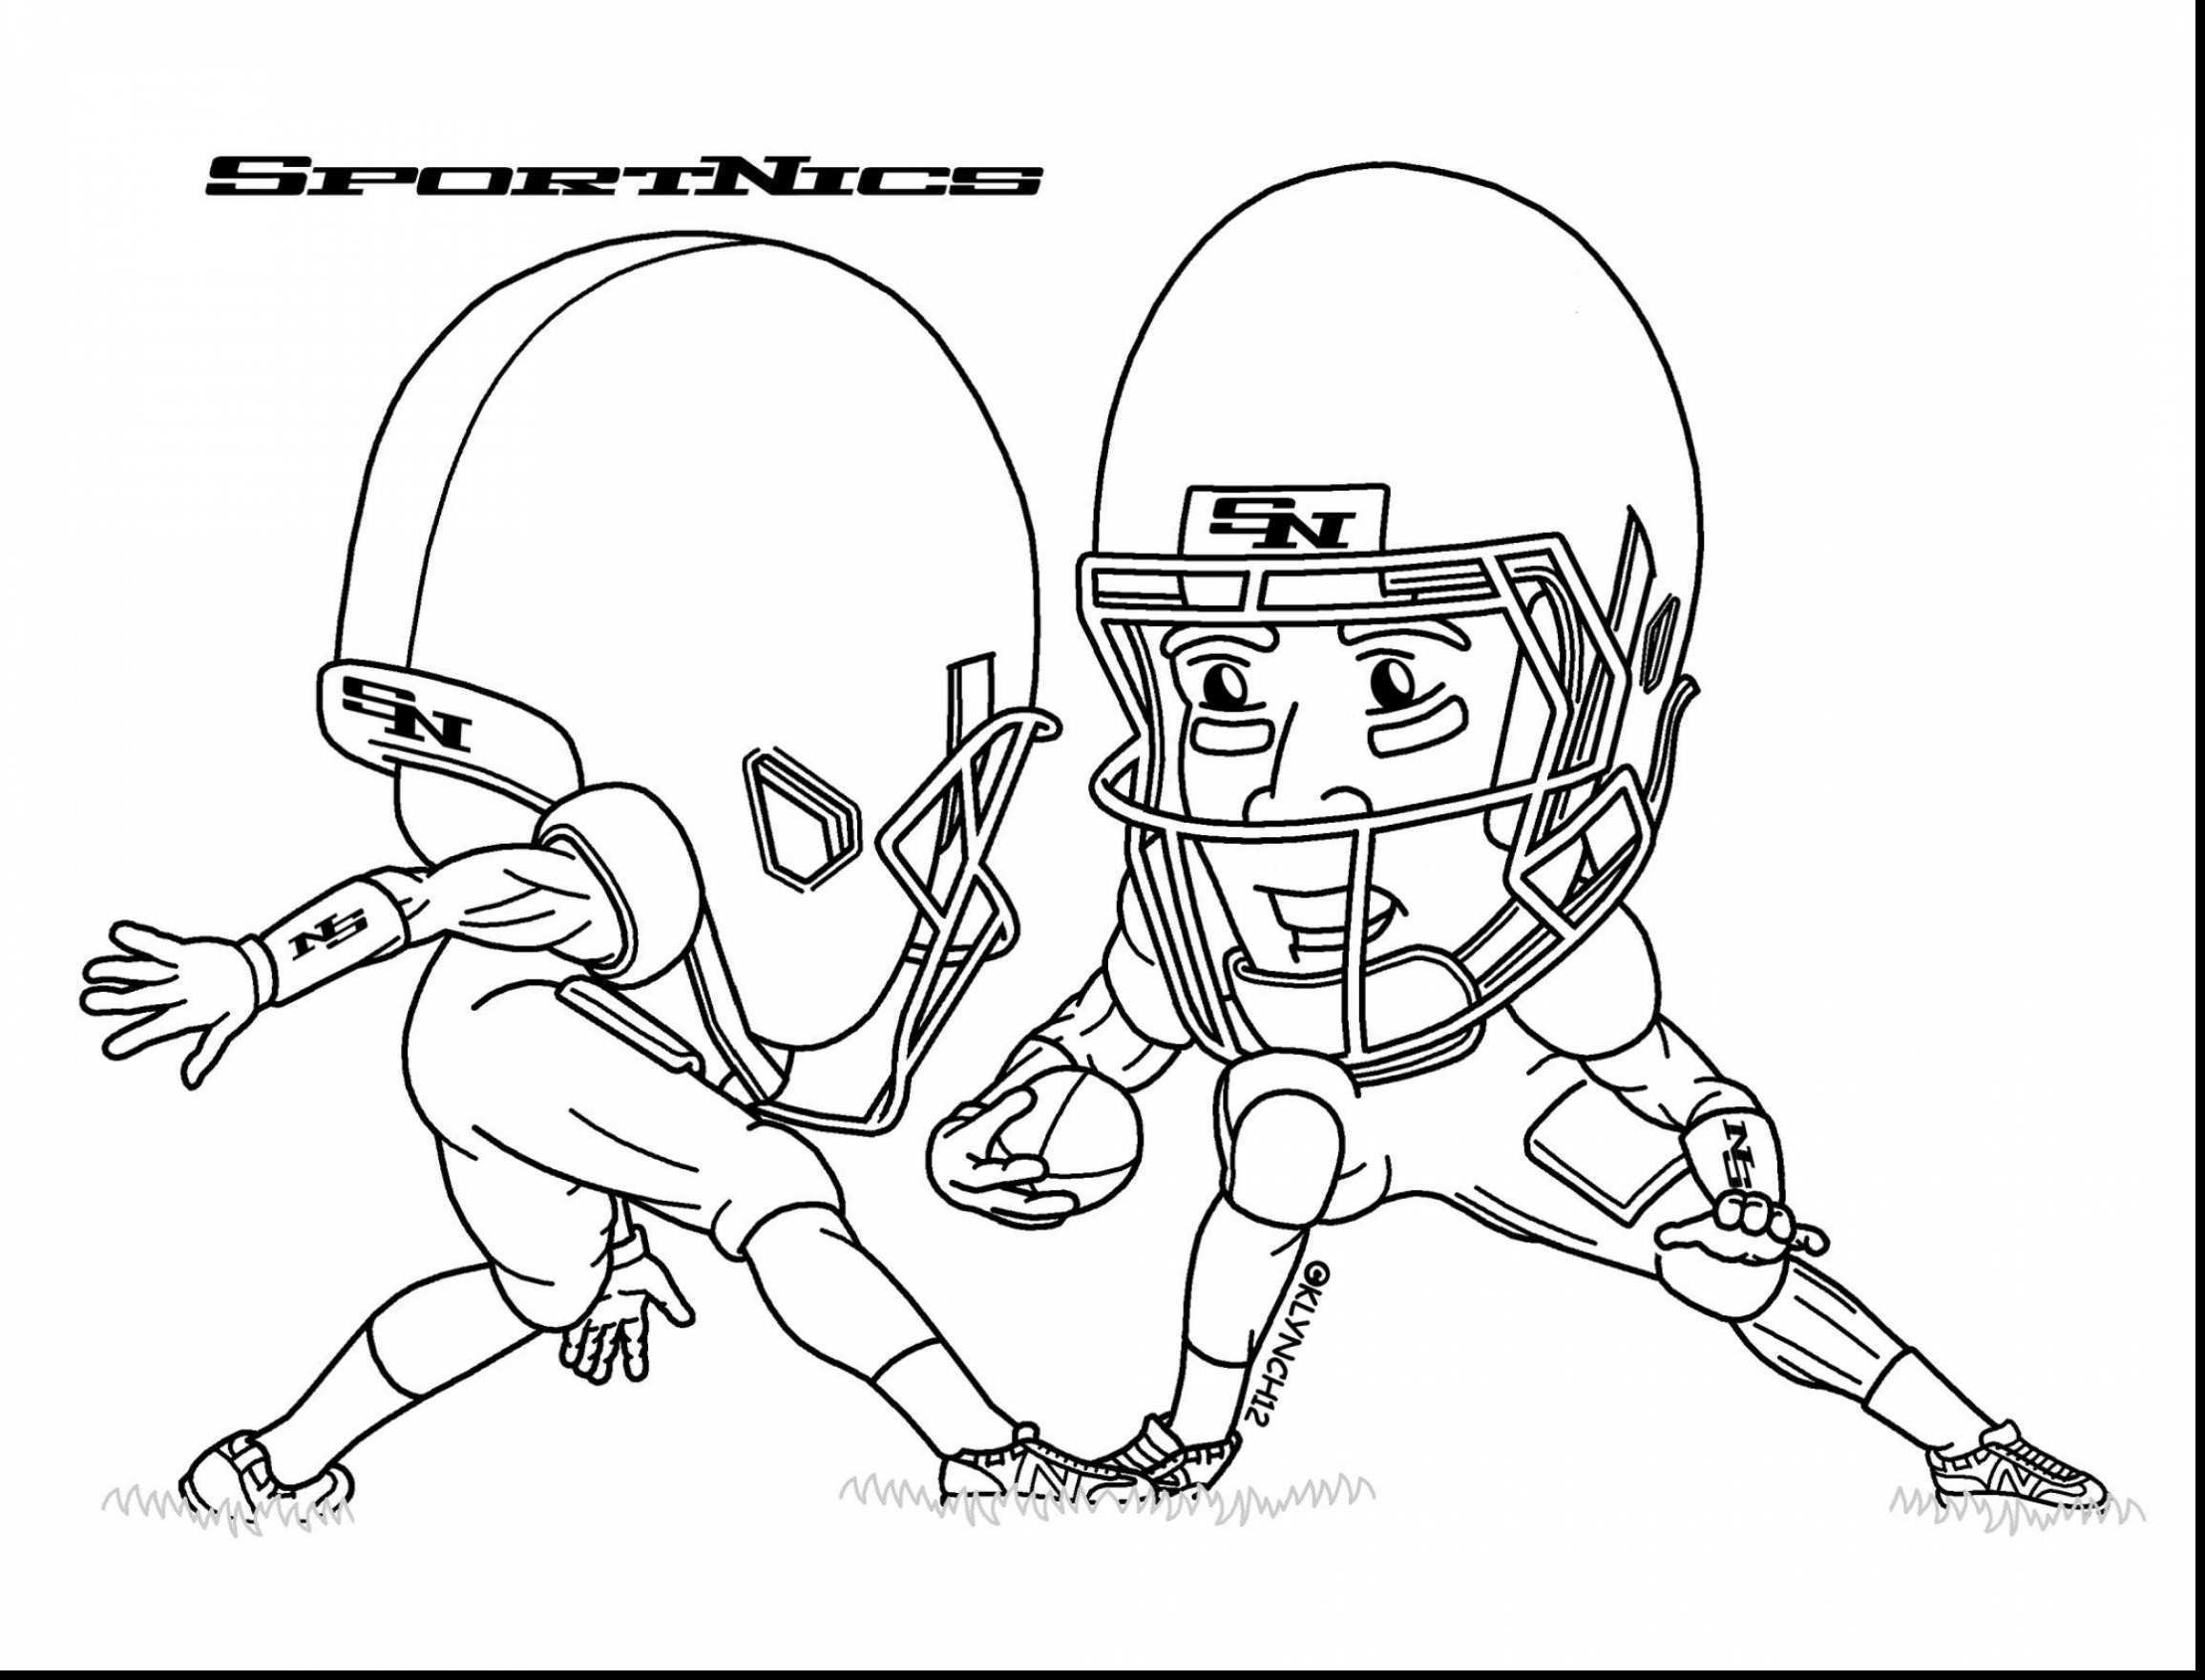 Best ideas about Nfl Coloring Book . Save or Pin Best Football Player Coloring Pages – advance thun Now.